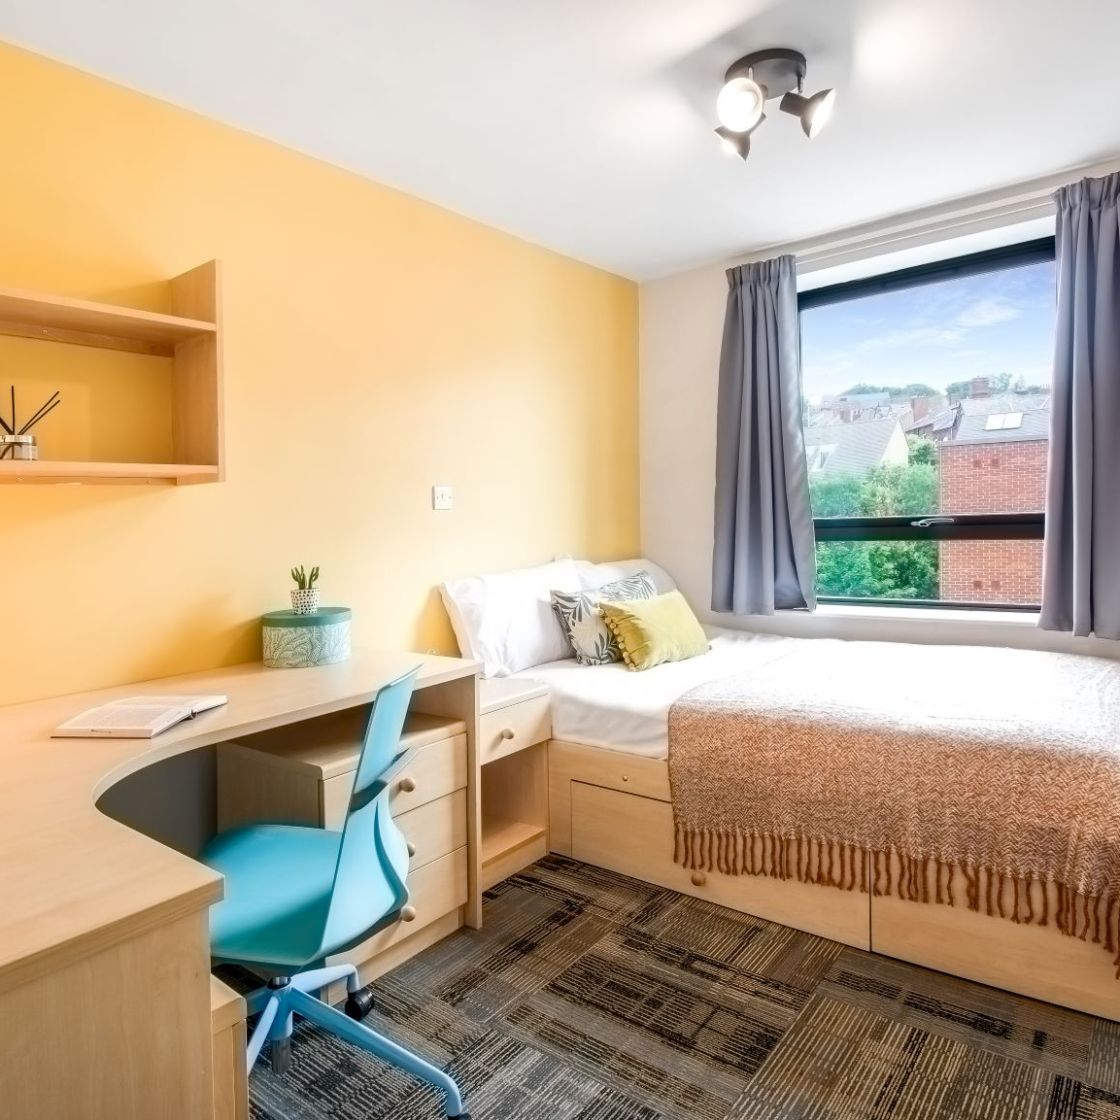 Student Apartment in Leeds, Standard Bedroom with Double bed and desk. IconInc, Triangle